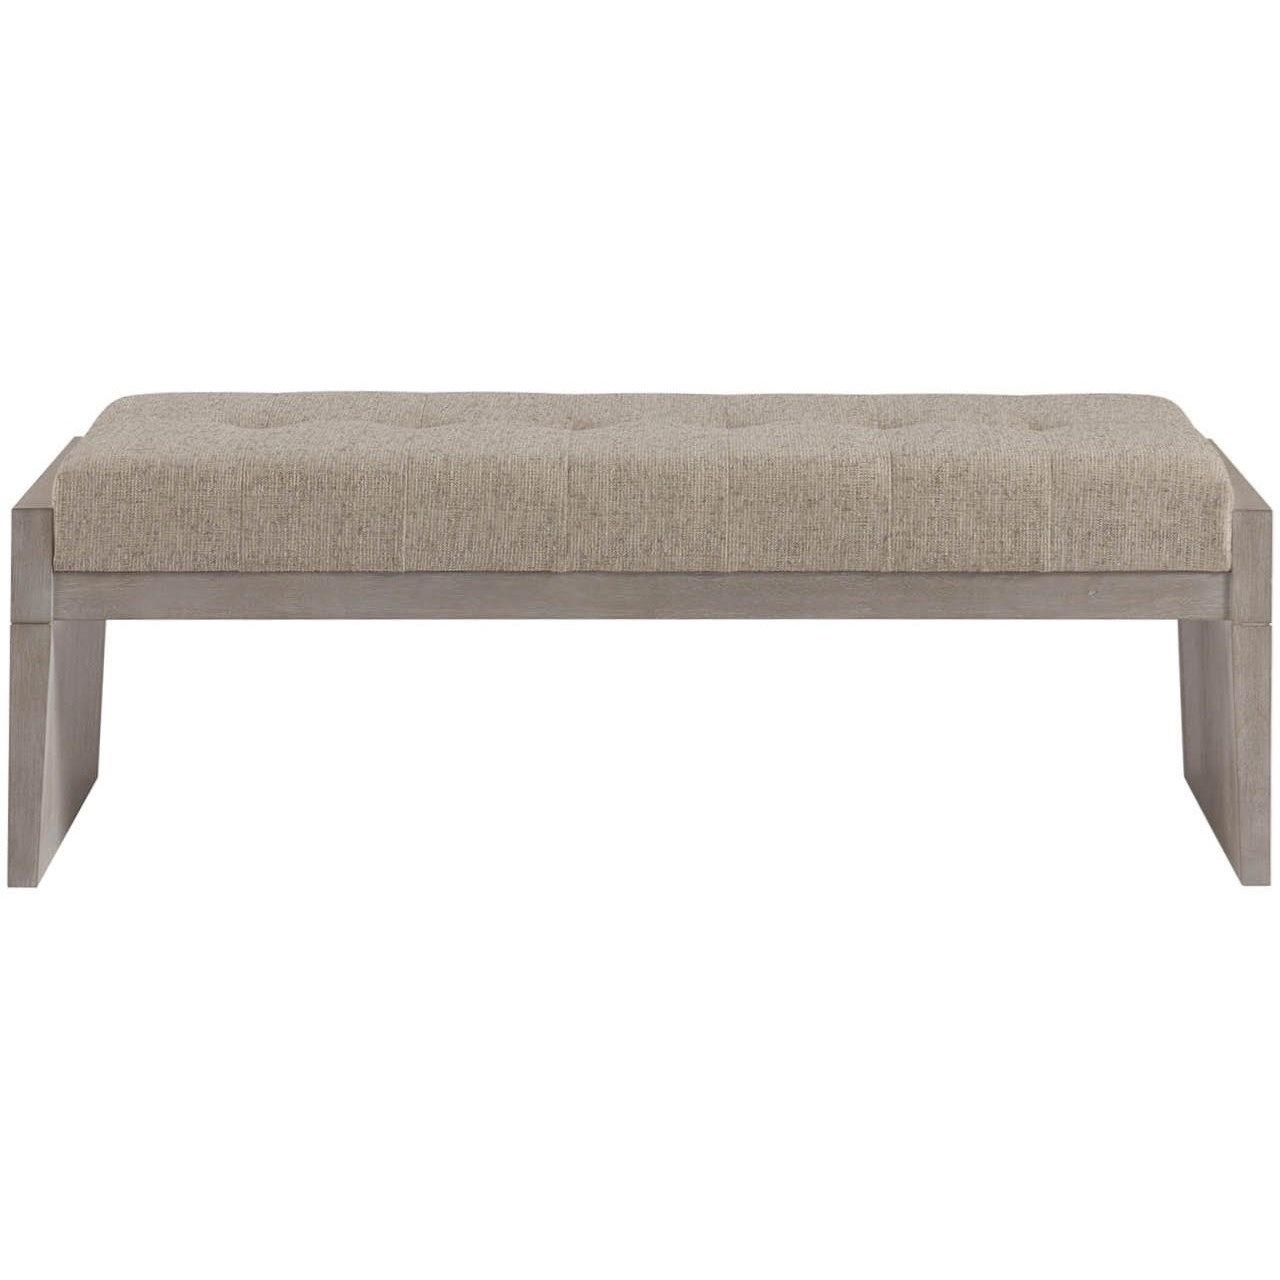 Midtown Bed End Bench by Universal at Baer's Furniture